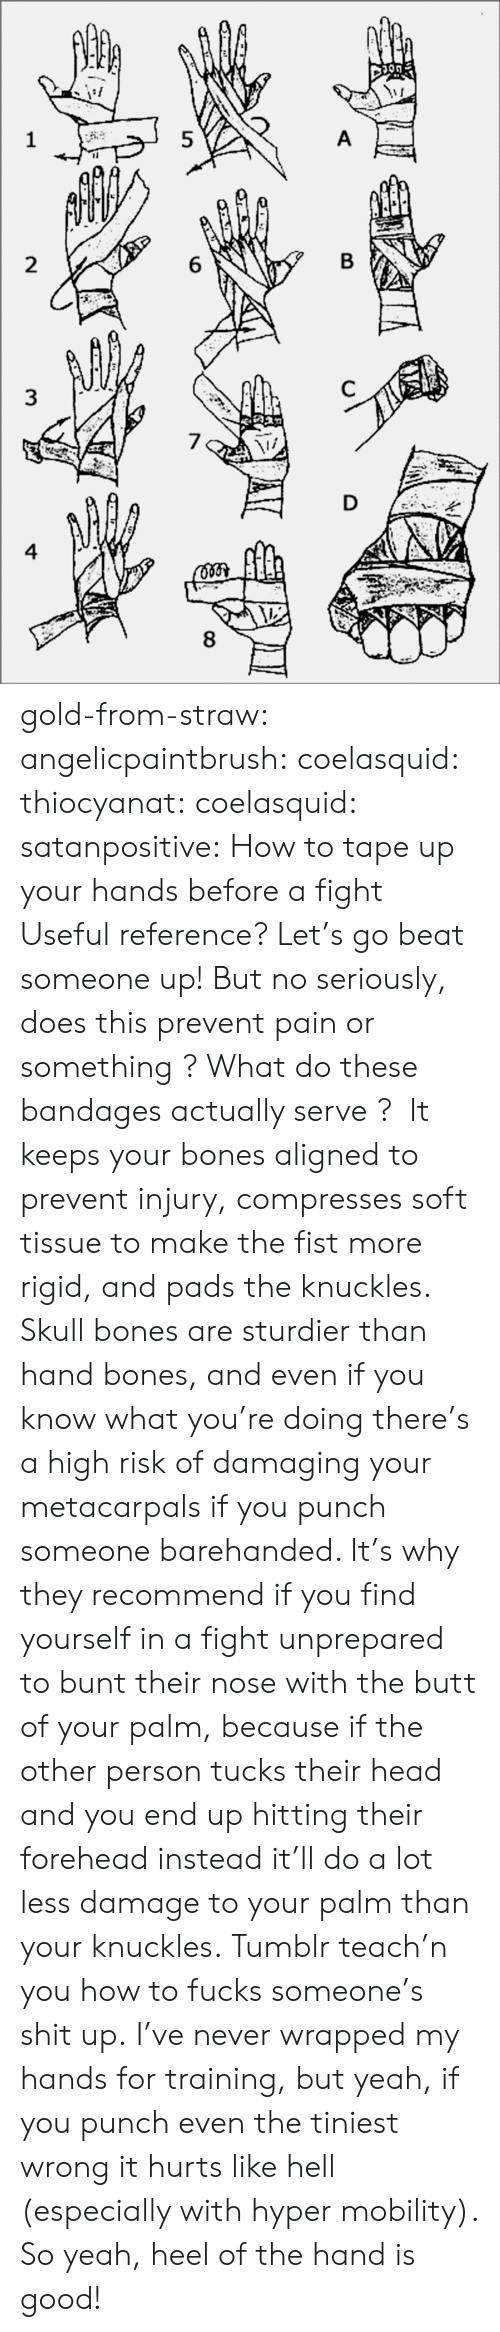 Bones, Butt, and Head: 8  6  5  3  4 gold-from-straw:  angelicpaintbrush:  coelasquid:  thiocyanat:  coelasquid:  satanpositive:  How to tape up your hands before a fight  Useful reference?  Let's go beat someone up! But no seriously, does this prevent pain or something ? What do these bandages actually serve ?   It keeps your bones aligned to prevent injury, compresses soft tissue to make the fist more rigid, and pads the knuckles. Skull bones are sturdier than hand bones, and even if you know what you're doing there's a high risk of damaging your metacarpals if you punch someone barehanded. It's why they recommend if you find yourself in a fight unprepared to bunt their nose with the butt of your palm, because if the other person tucks their head and you end up hitting their forehead instead it'll do a lot less damage to your palm than your knuckles.  Tumblr teach'n you how to fucks someone's shit up.   I've never wrapped my hands for training, but yeah, if you punch even the tiniest wrong it hurts like hell (especially with hyper mobility). So yeah, heel of the hand is good!